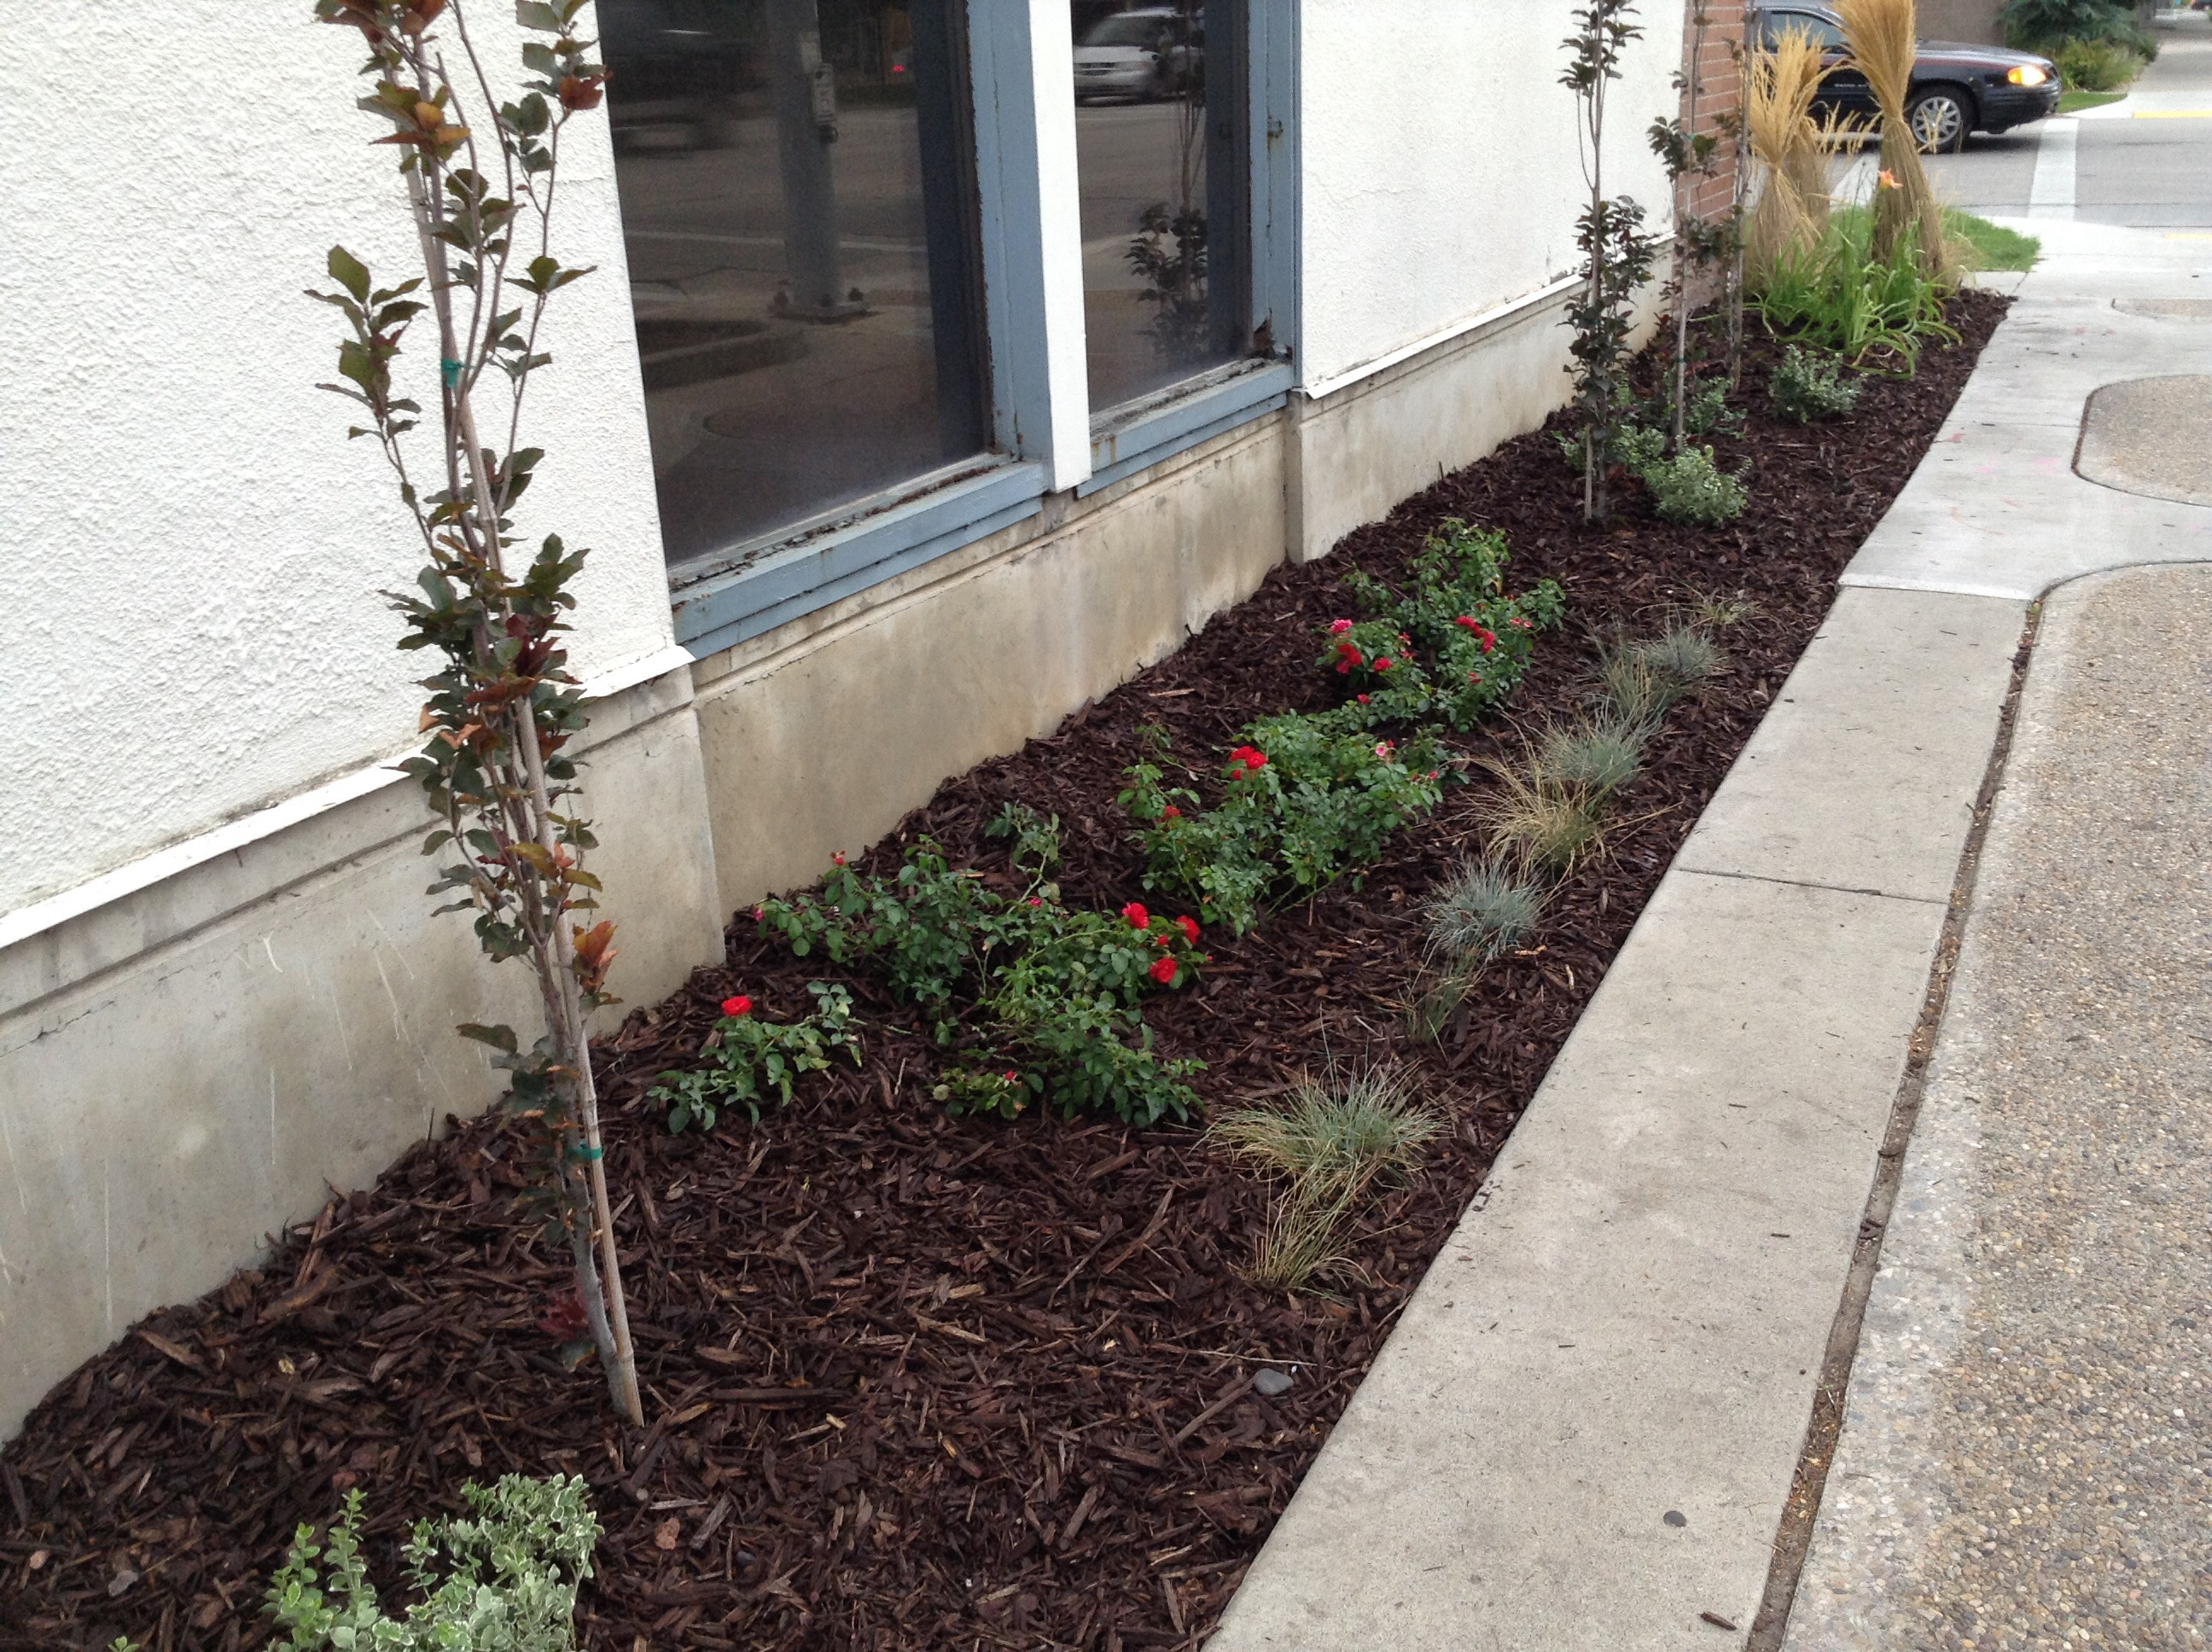 newly planted shrub roses, columnar trees, and ornamental grasses